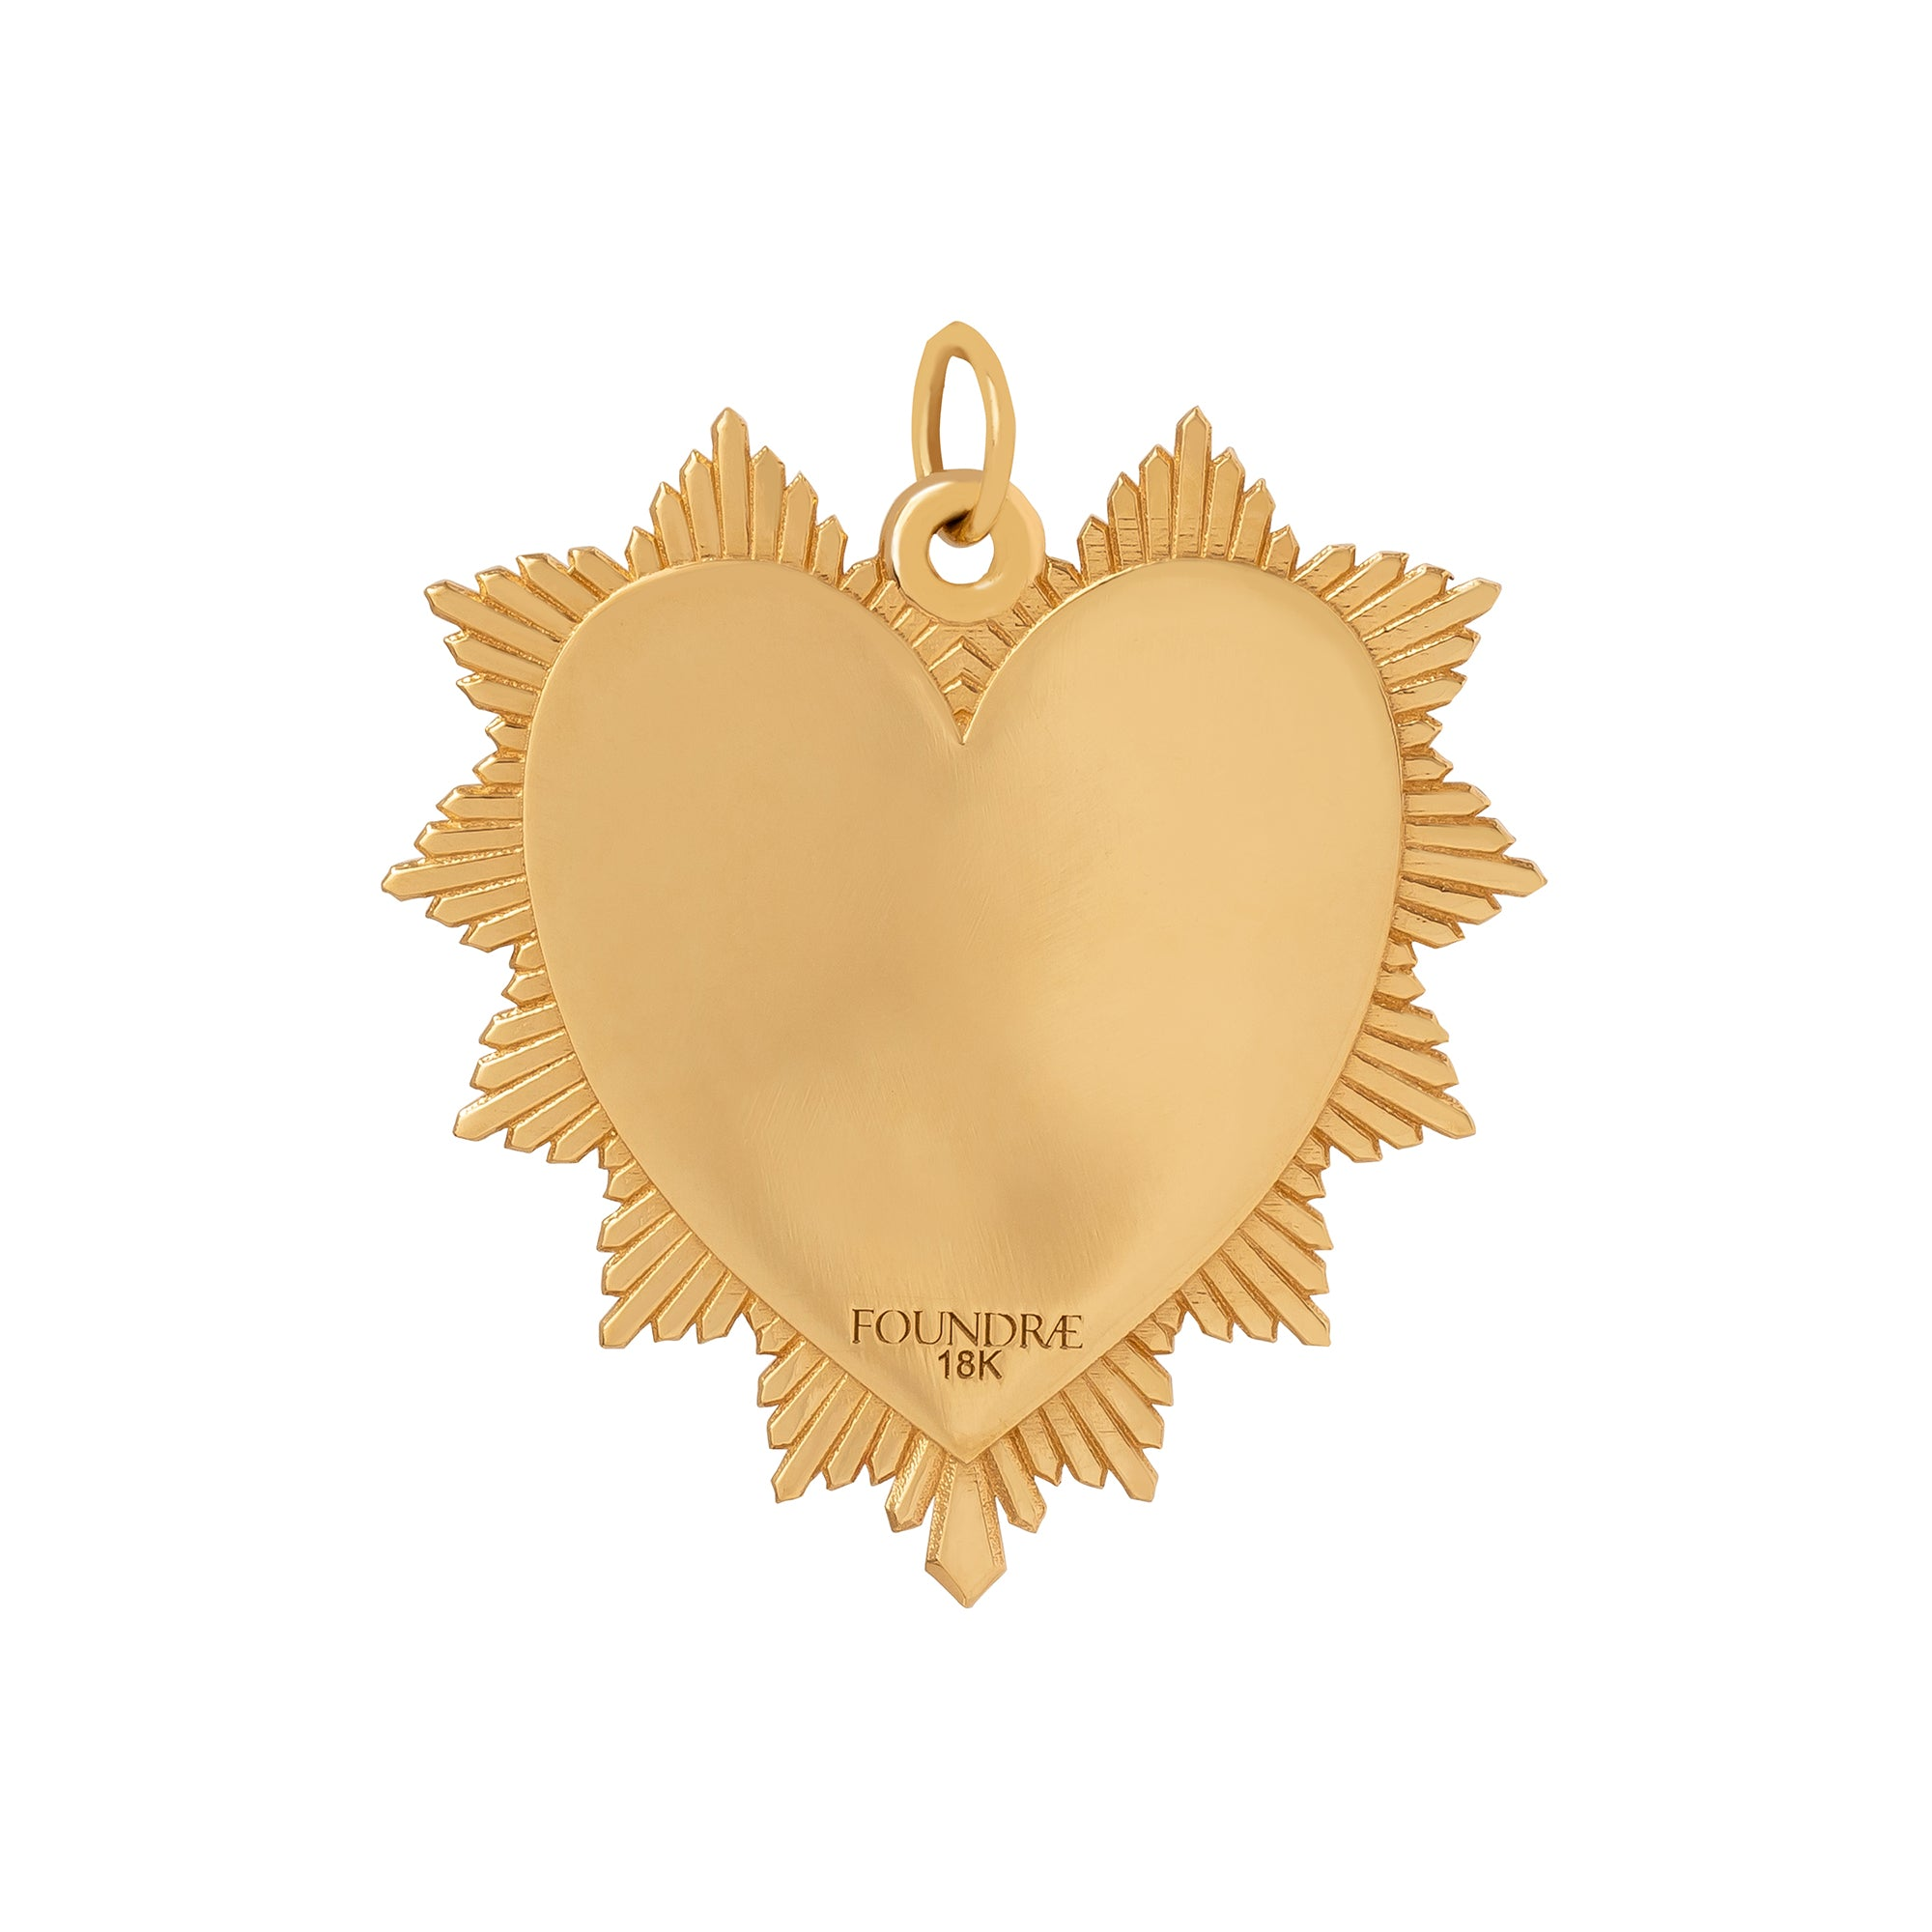 Foundrae Block Oversized Heart Love Token - Charms & Pendants - Broken English Jewelry